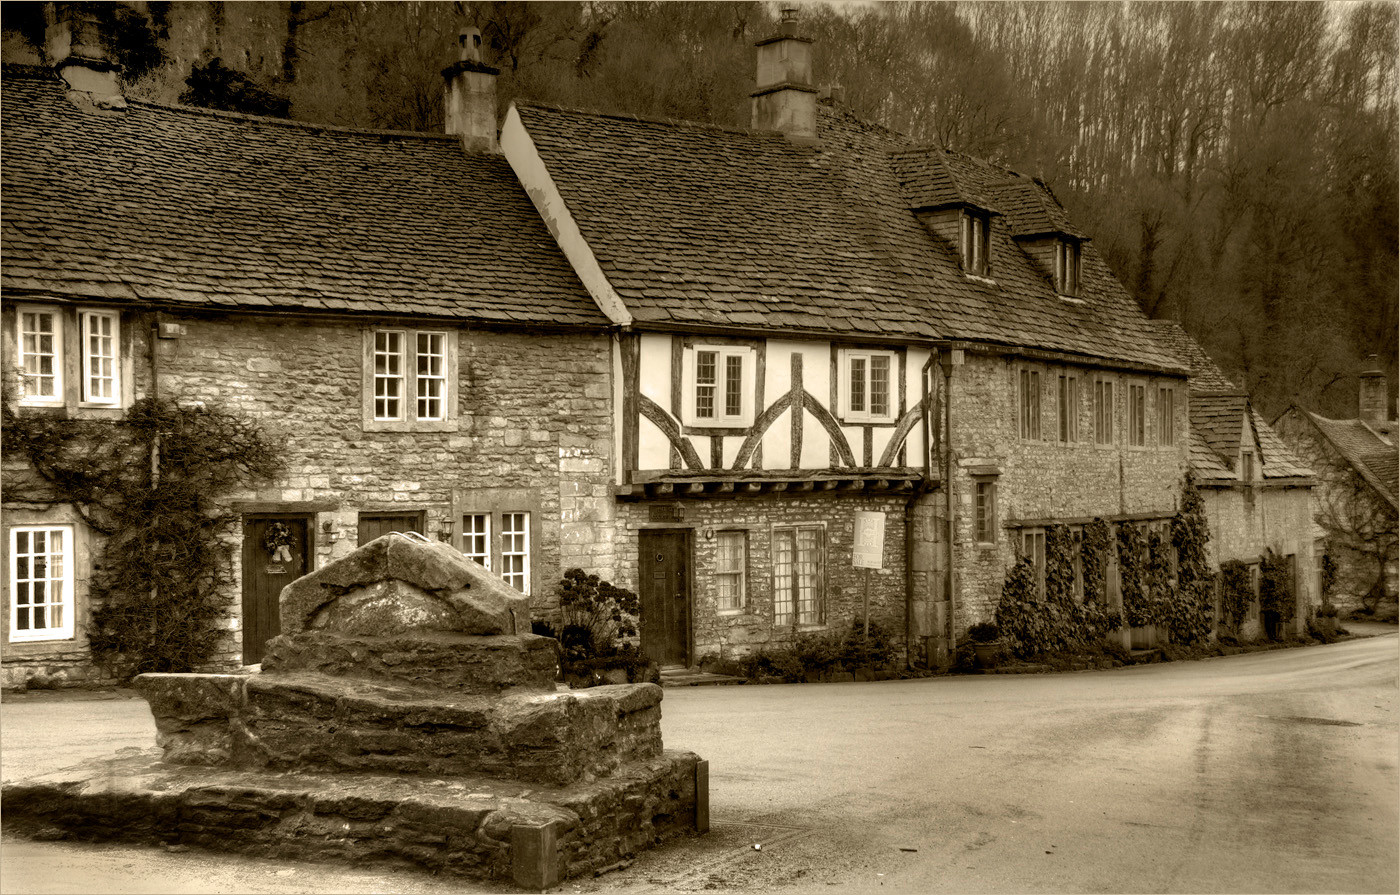 17 CASTLE COMBE WILTSHIRE by Dave Brooker